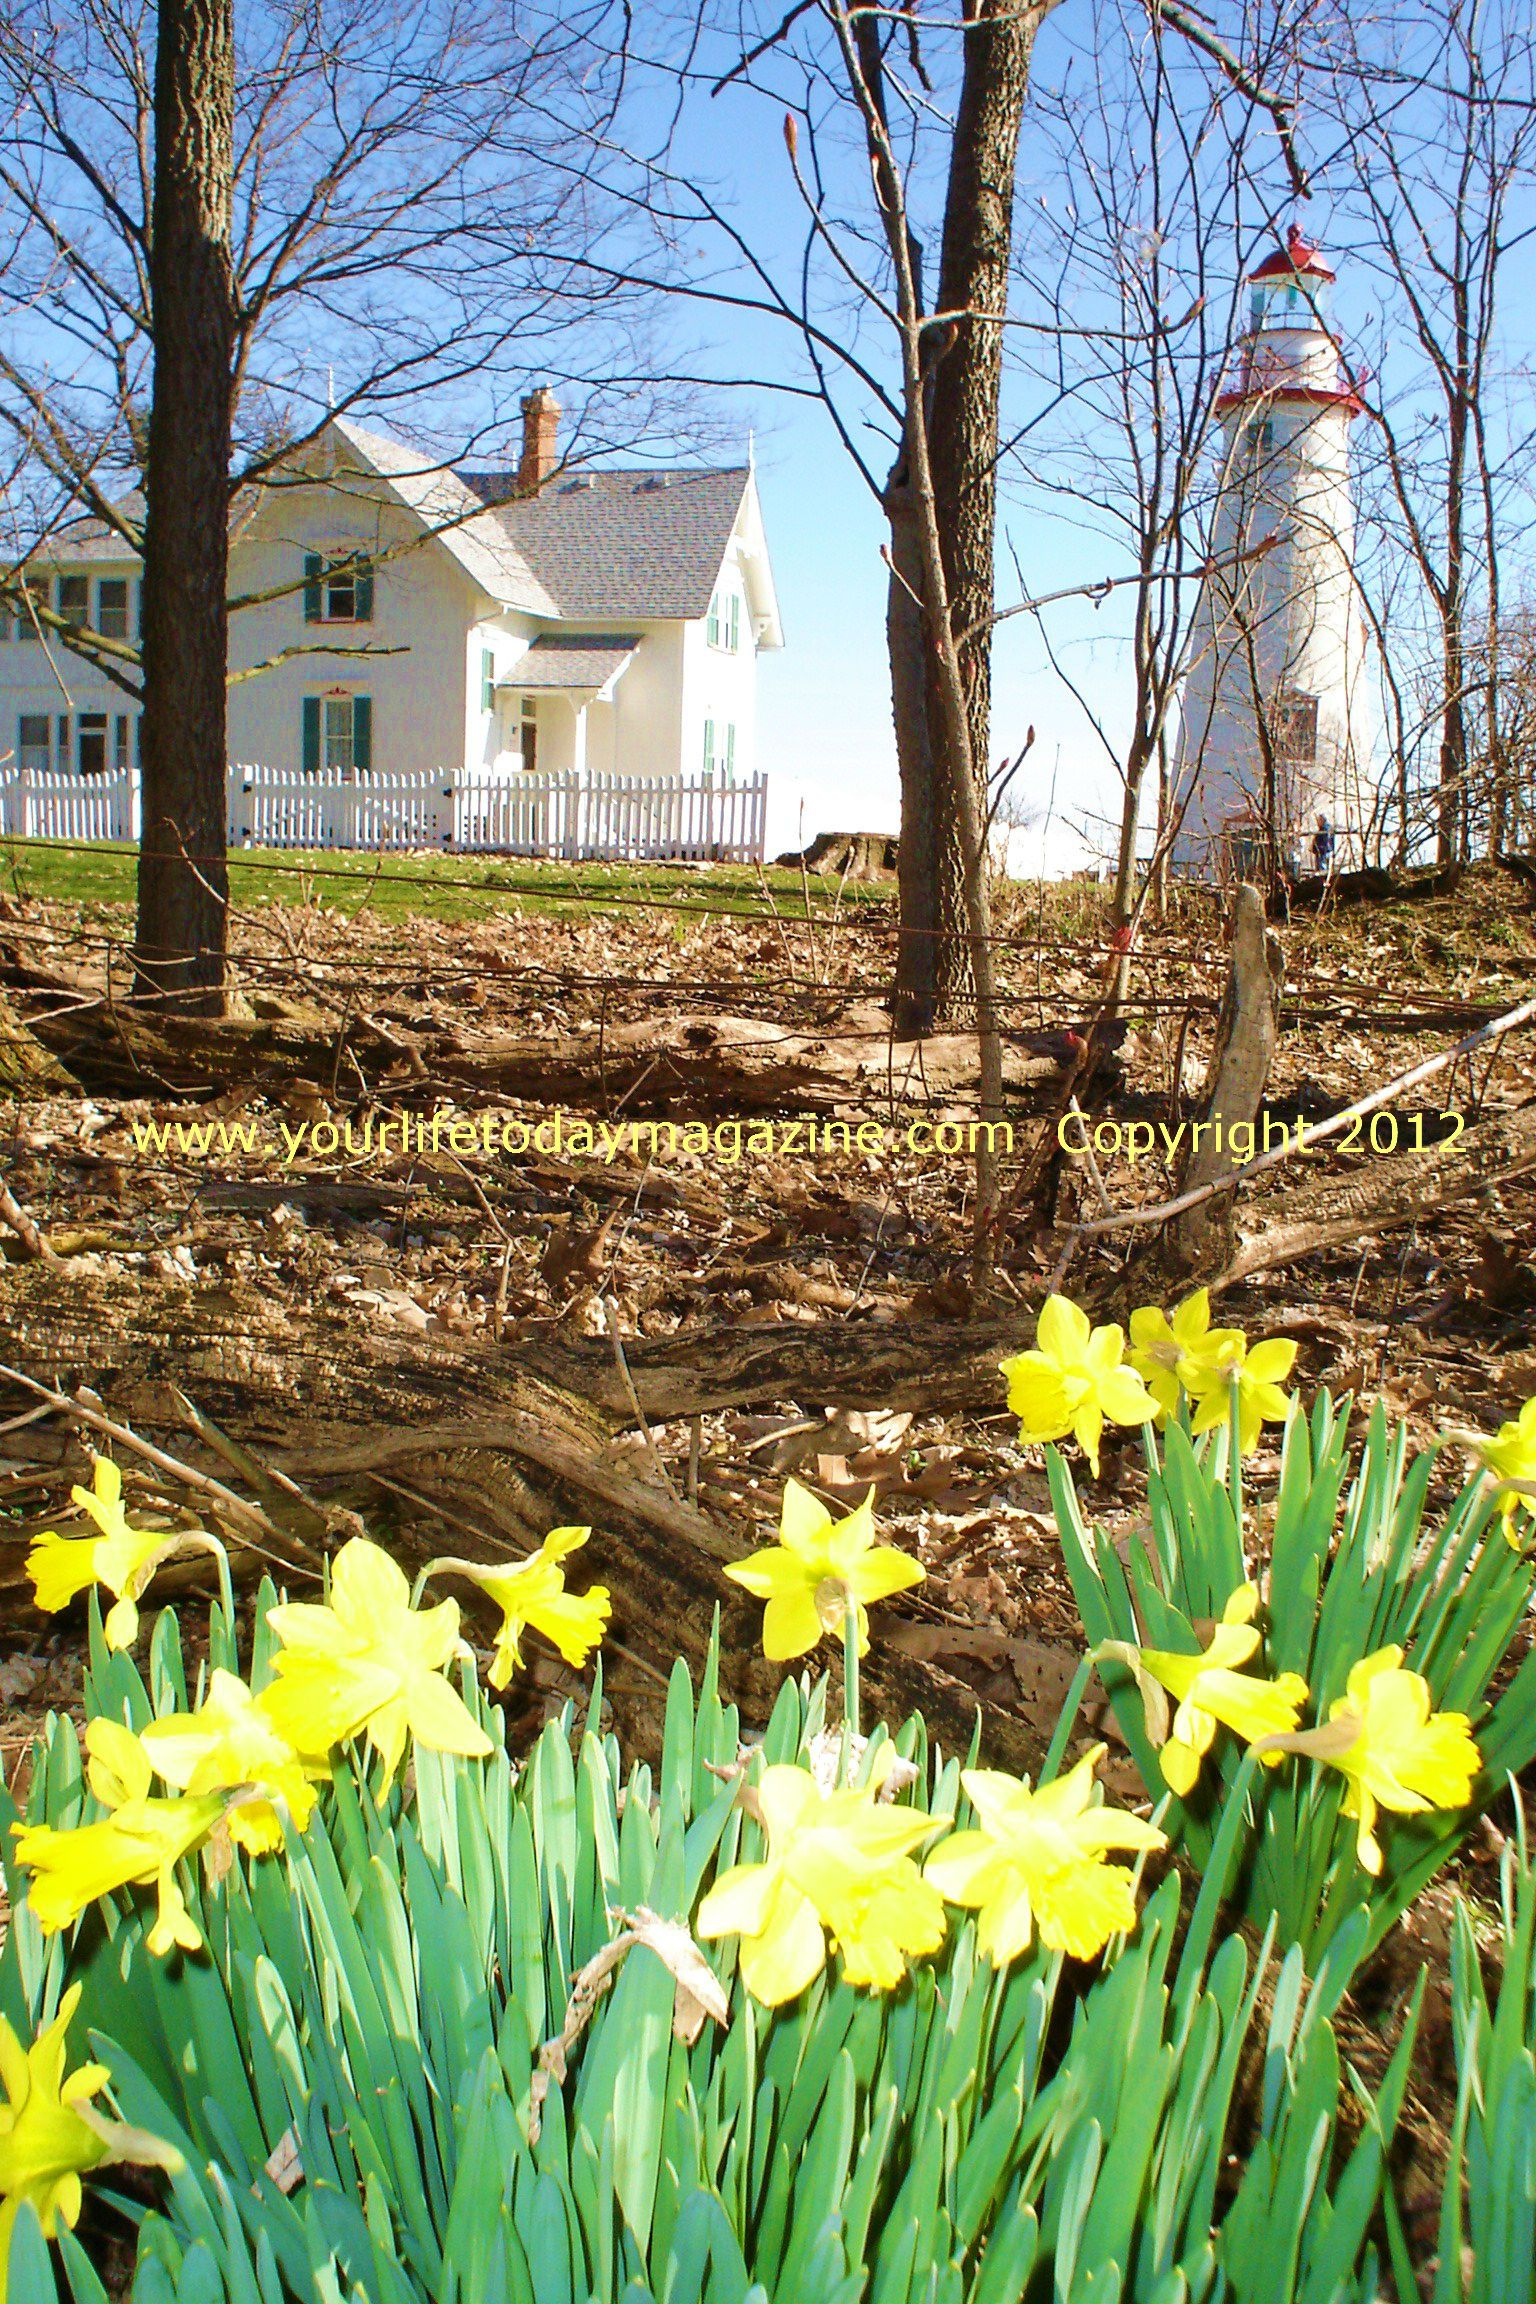 When I passed my freezing daffodil buds this morning, I thought ...